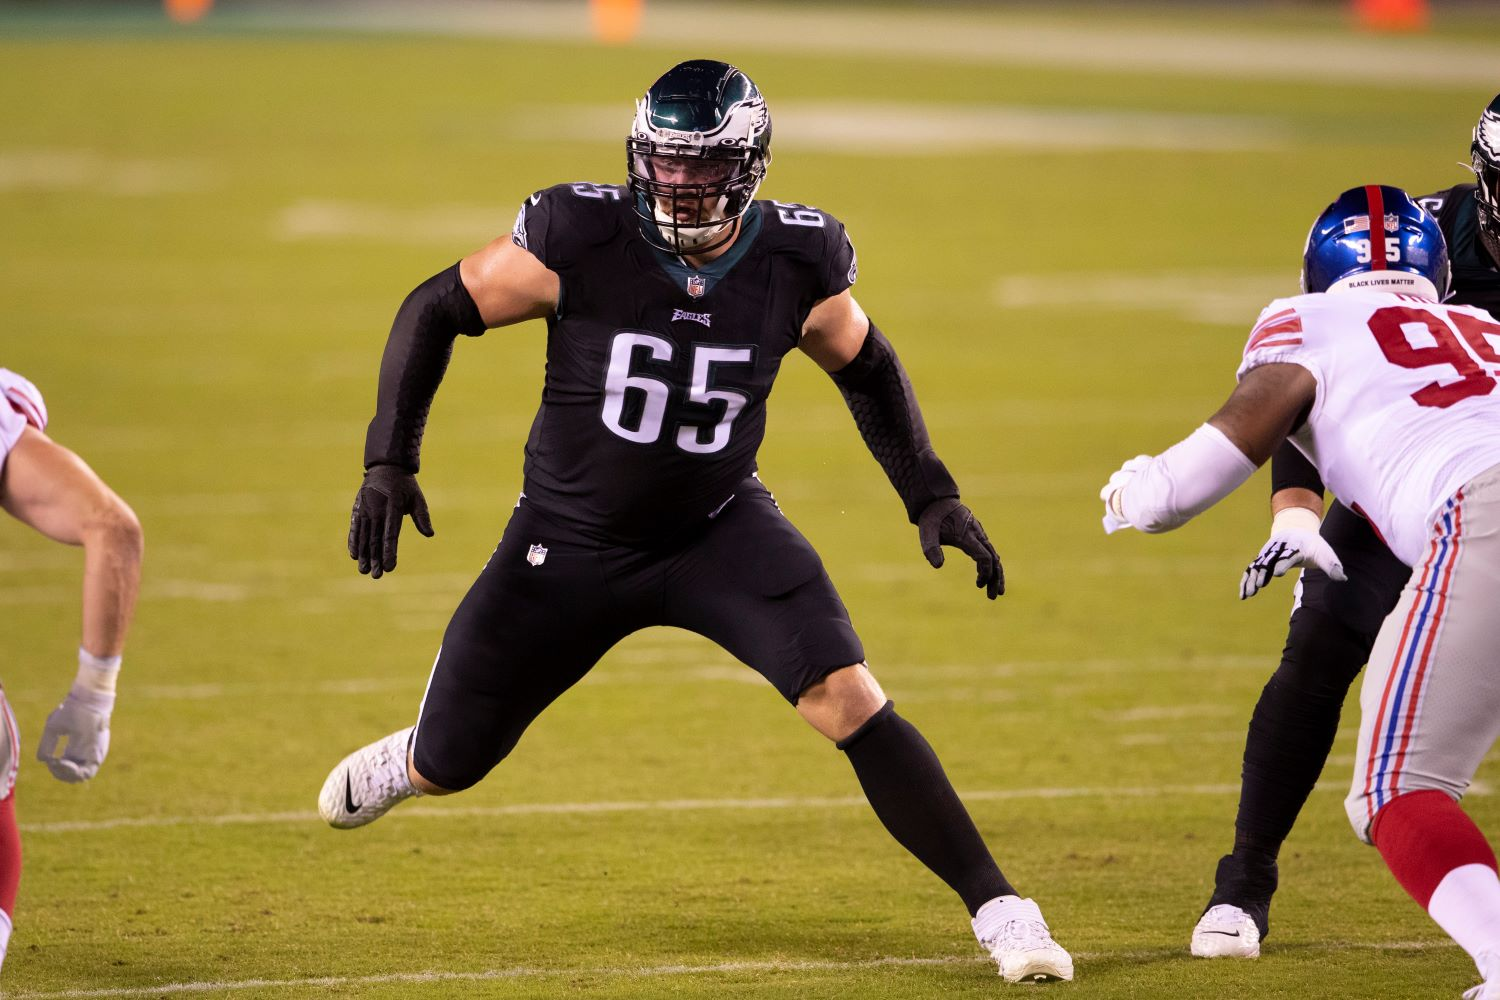 The Philadelphia Eagles just dodged a massive bullet with Lane Johnson, who won't miss as much time as expected after spraining his MCL.